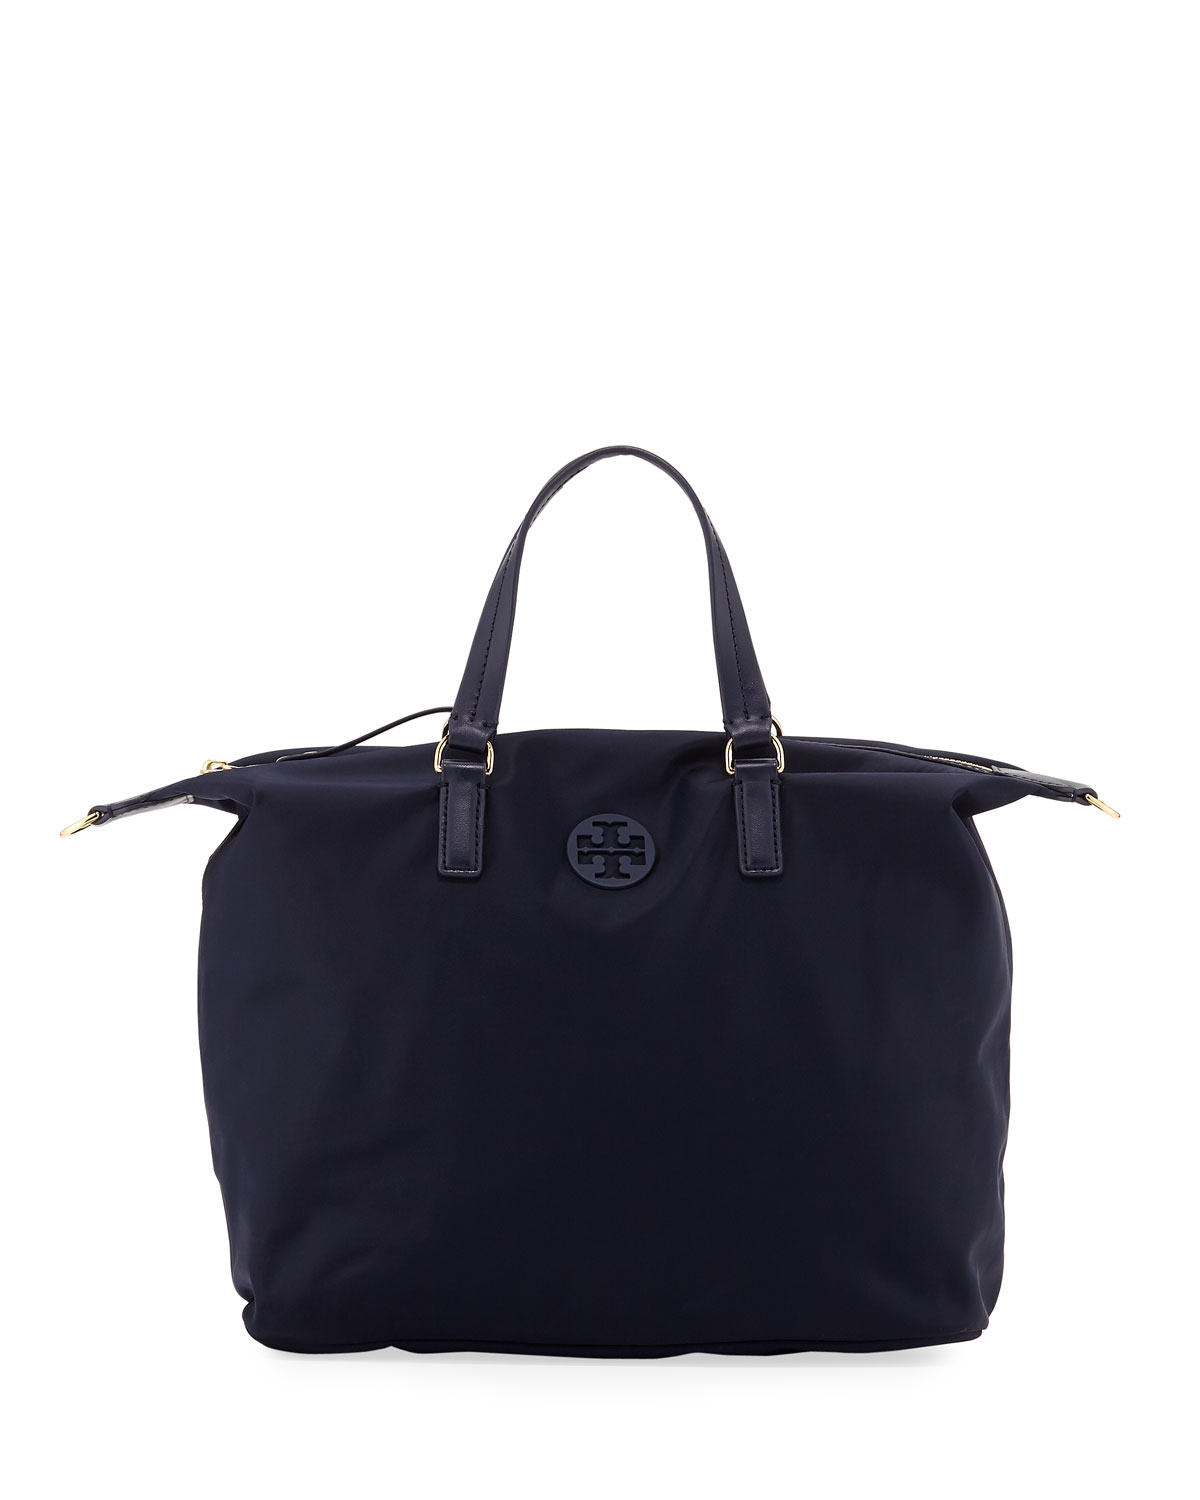 db54d131b8d Tory Burch Tilda Slouchy Nylon Satchel Bag